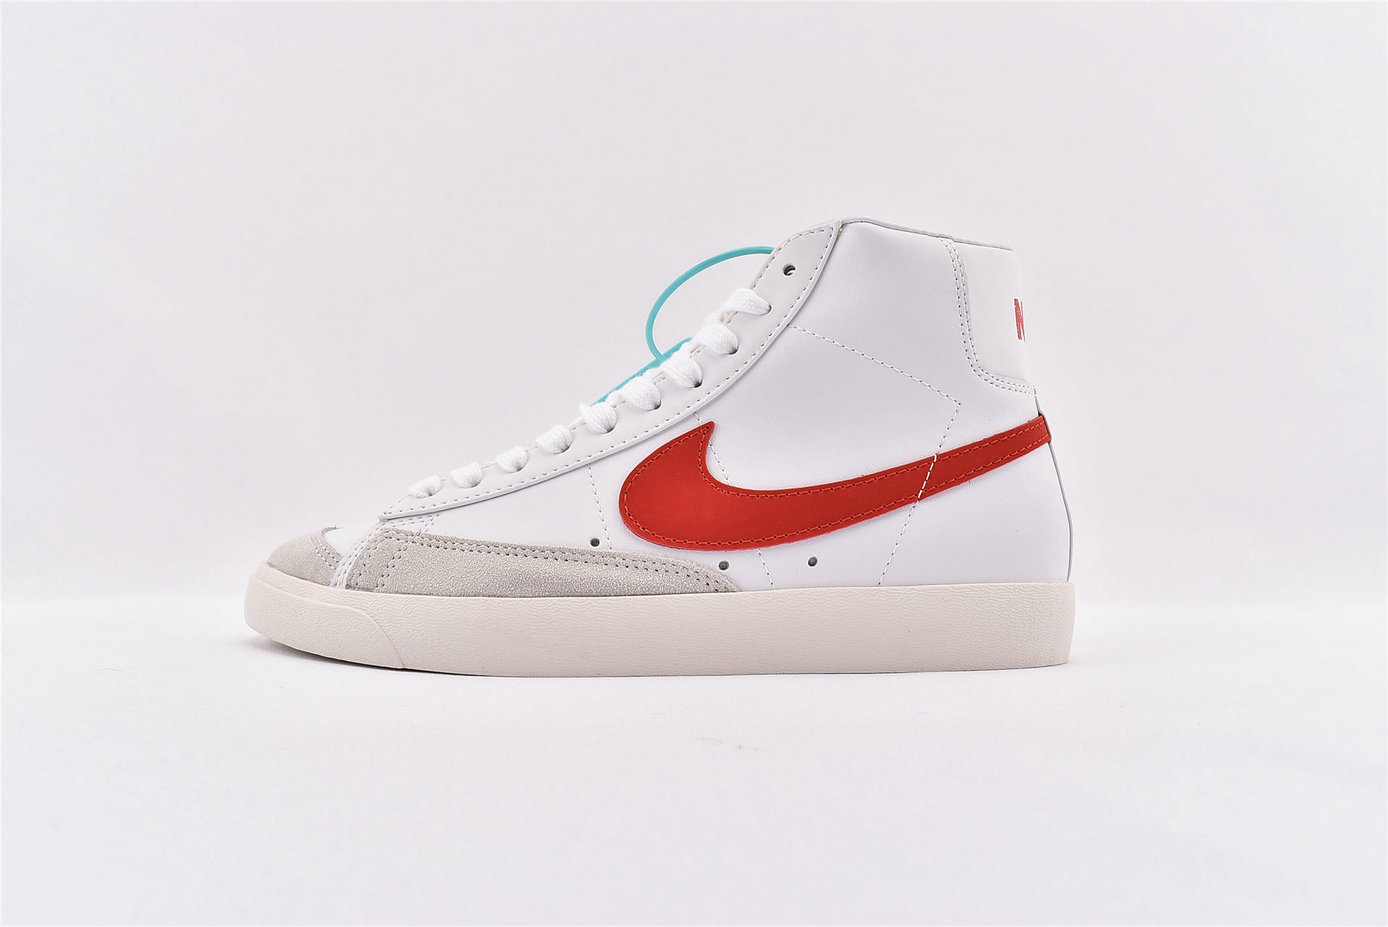 Where To Buy Cheap Nike Blazer Mid 77 VNTG Habanero Red Sail - White BQ6806-600